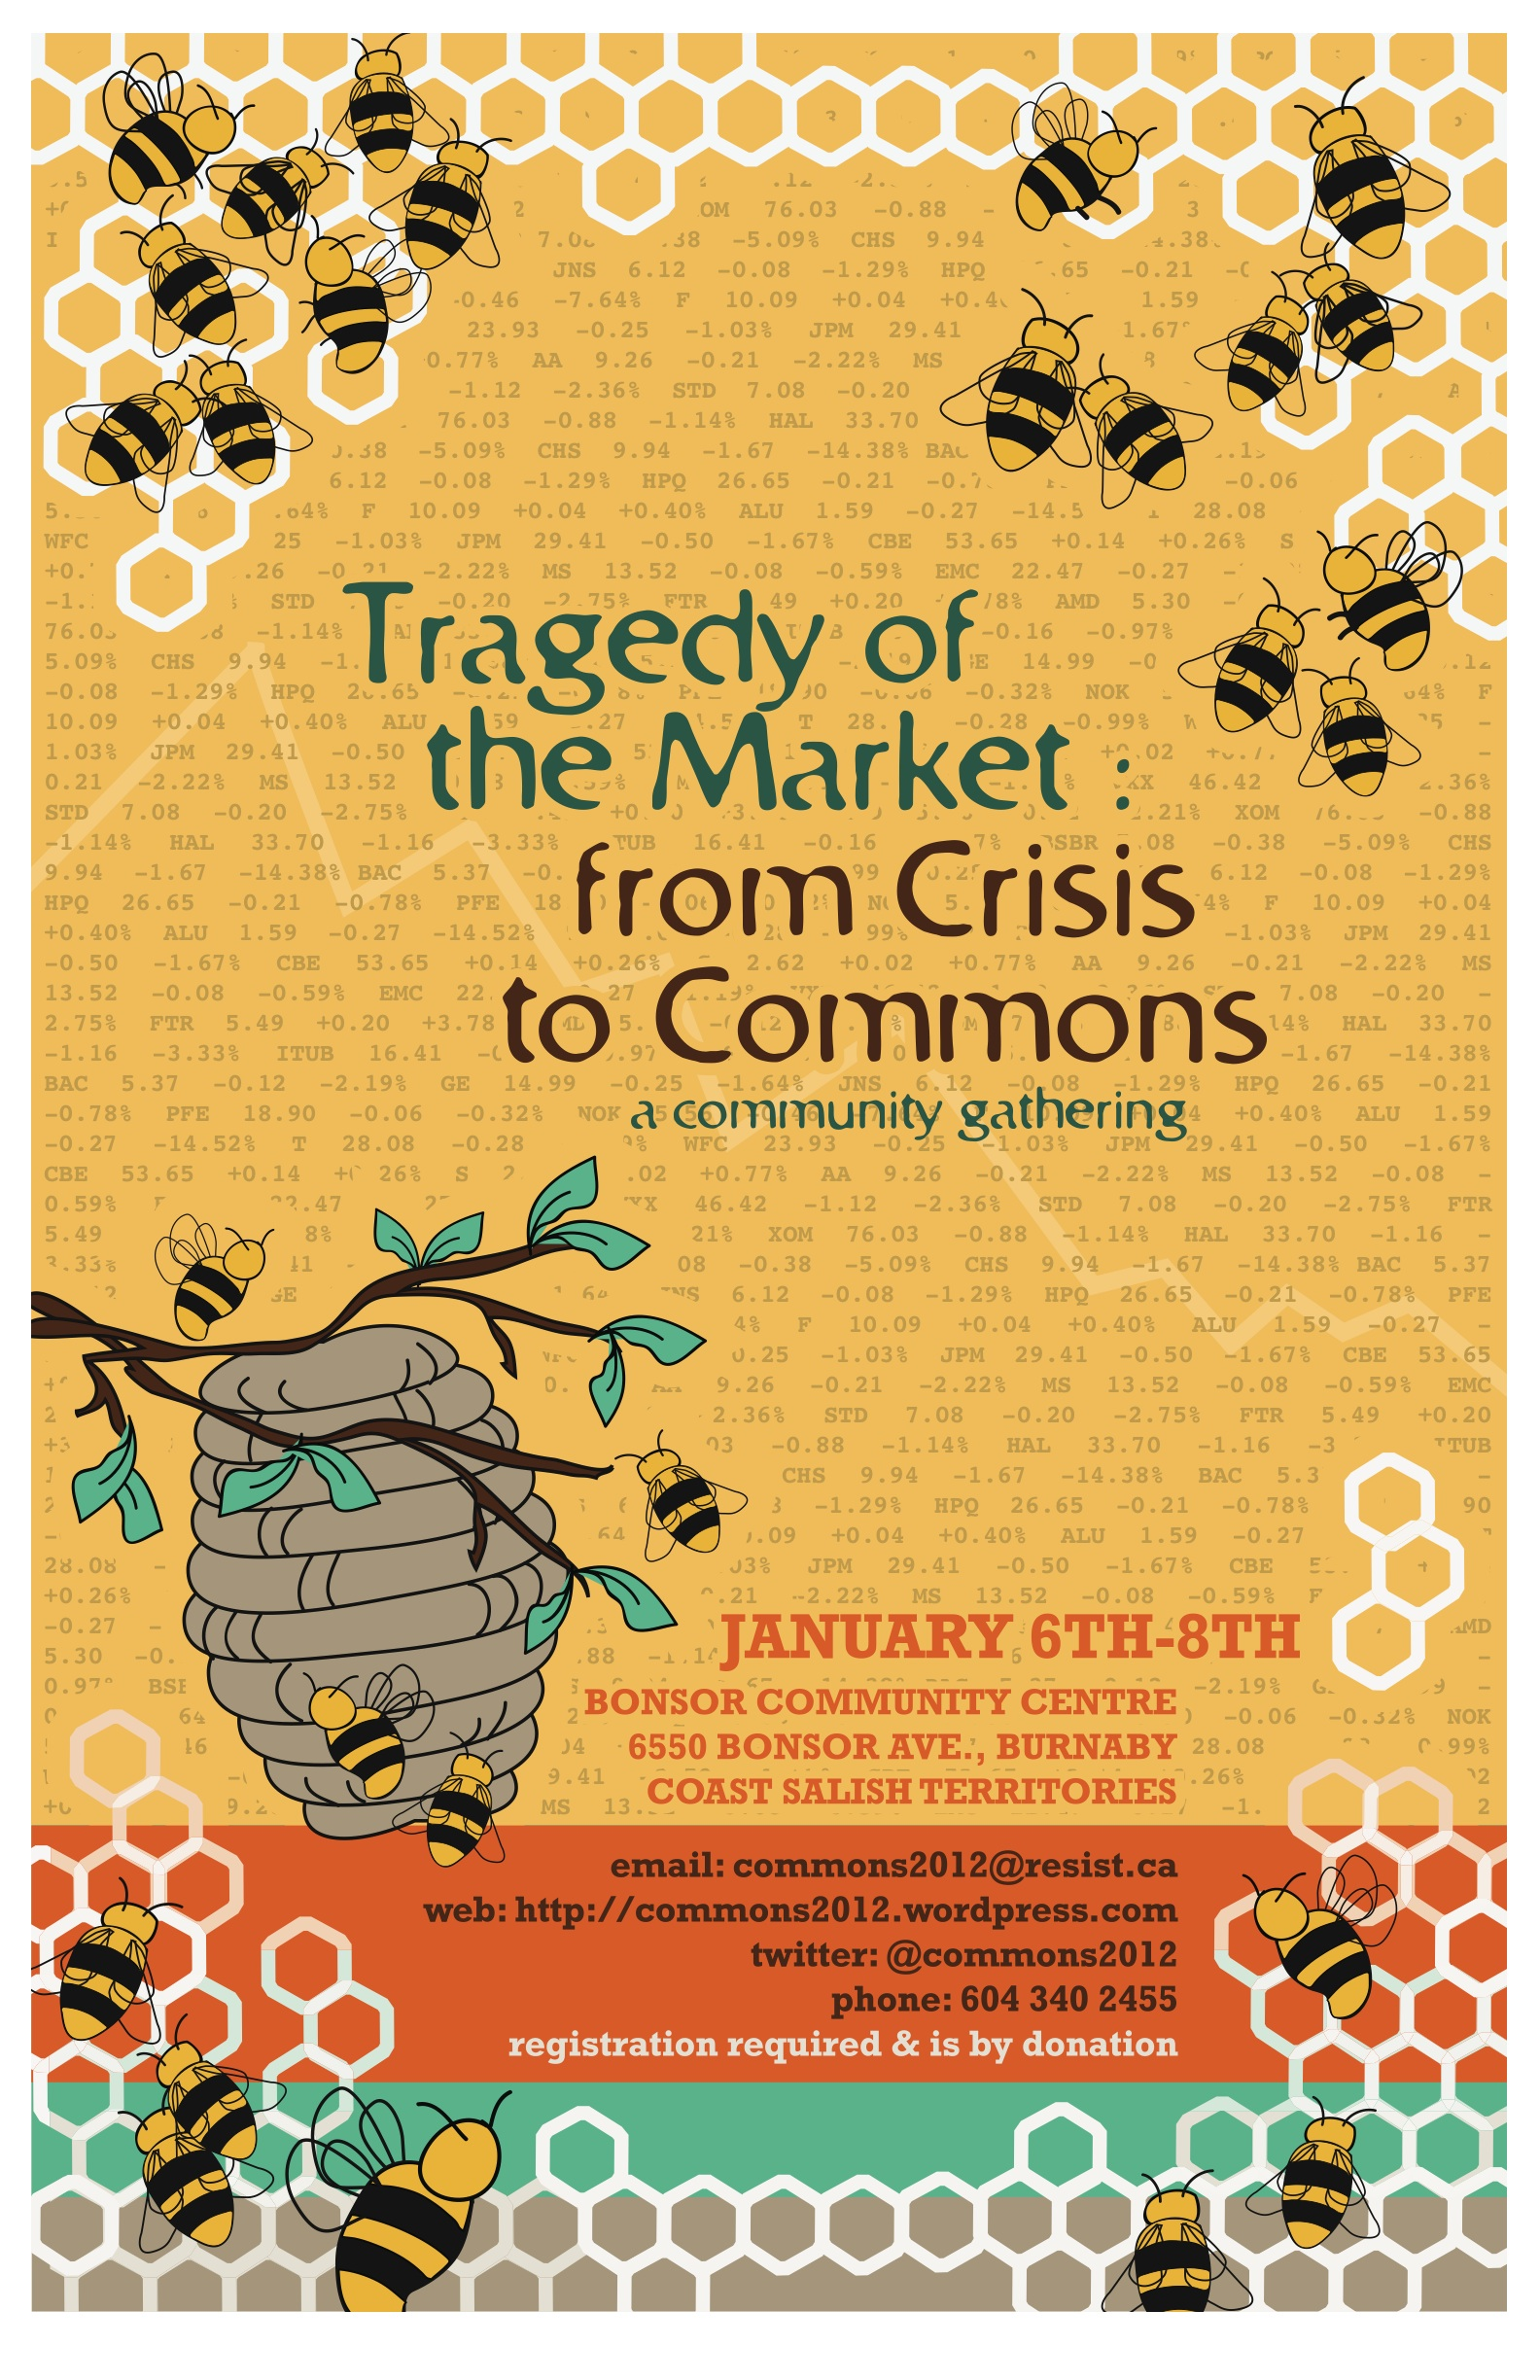 Tragedy of the Market: from Crisis to Commons